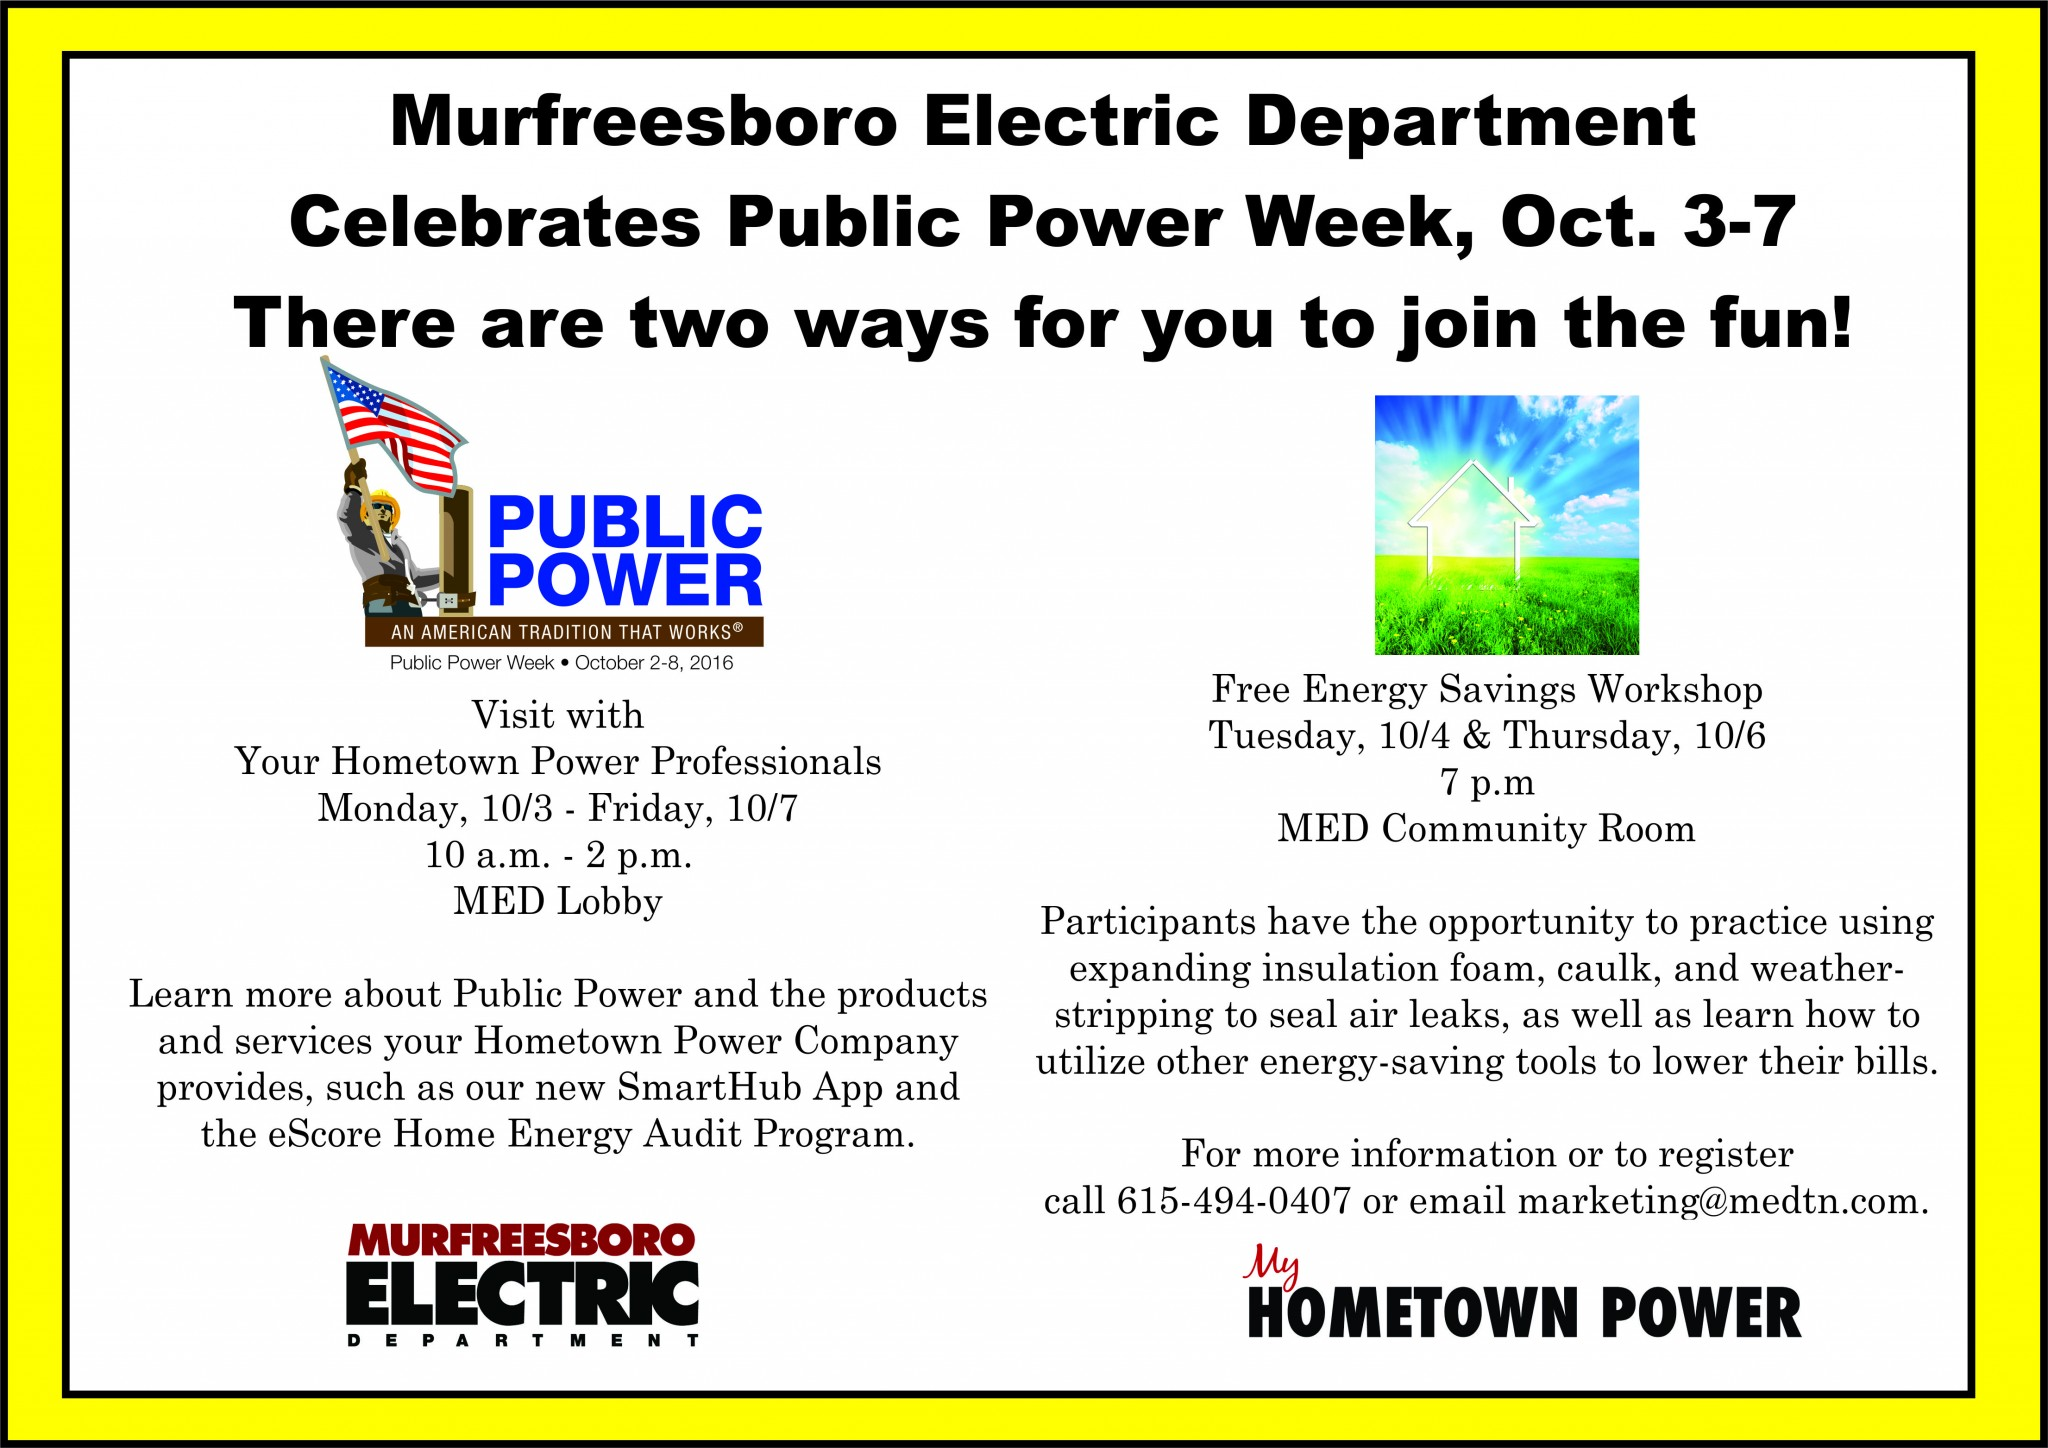 Murfreesboro Electric Celebrating Public Power Week